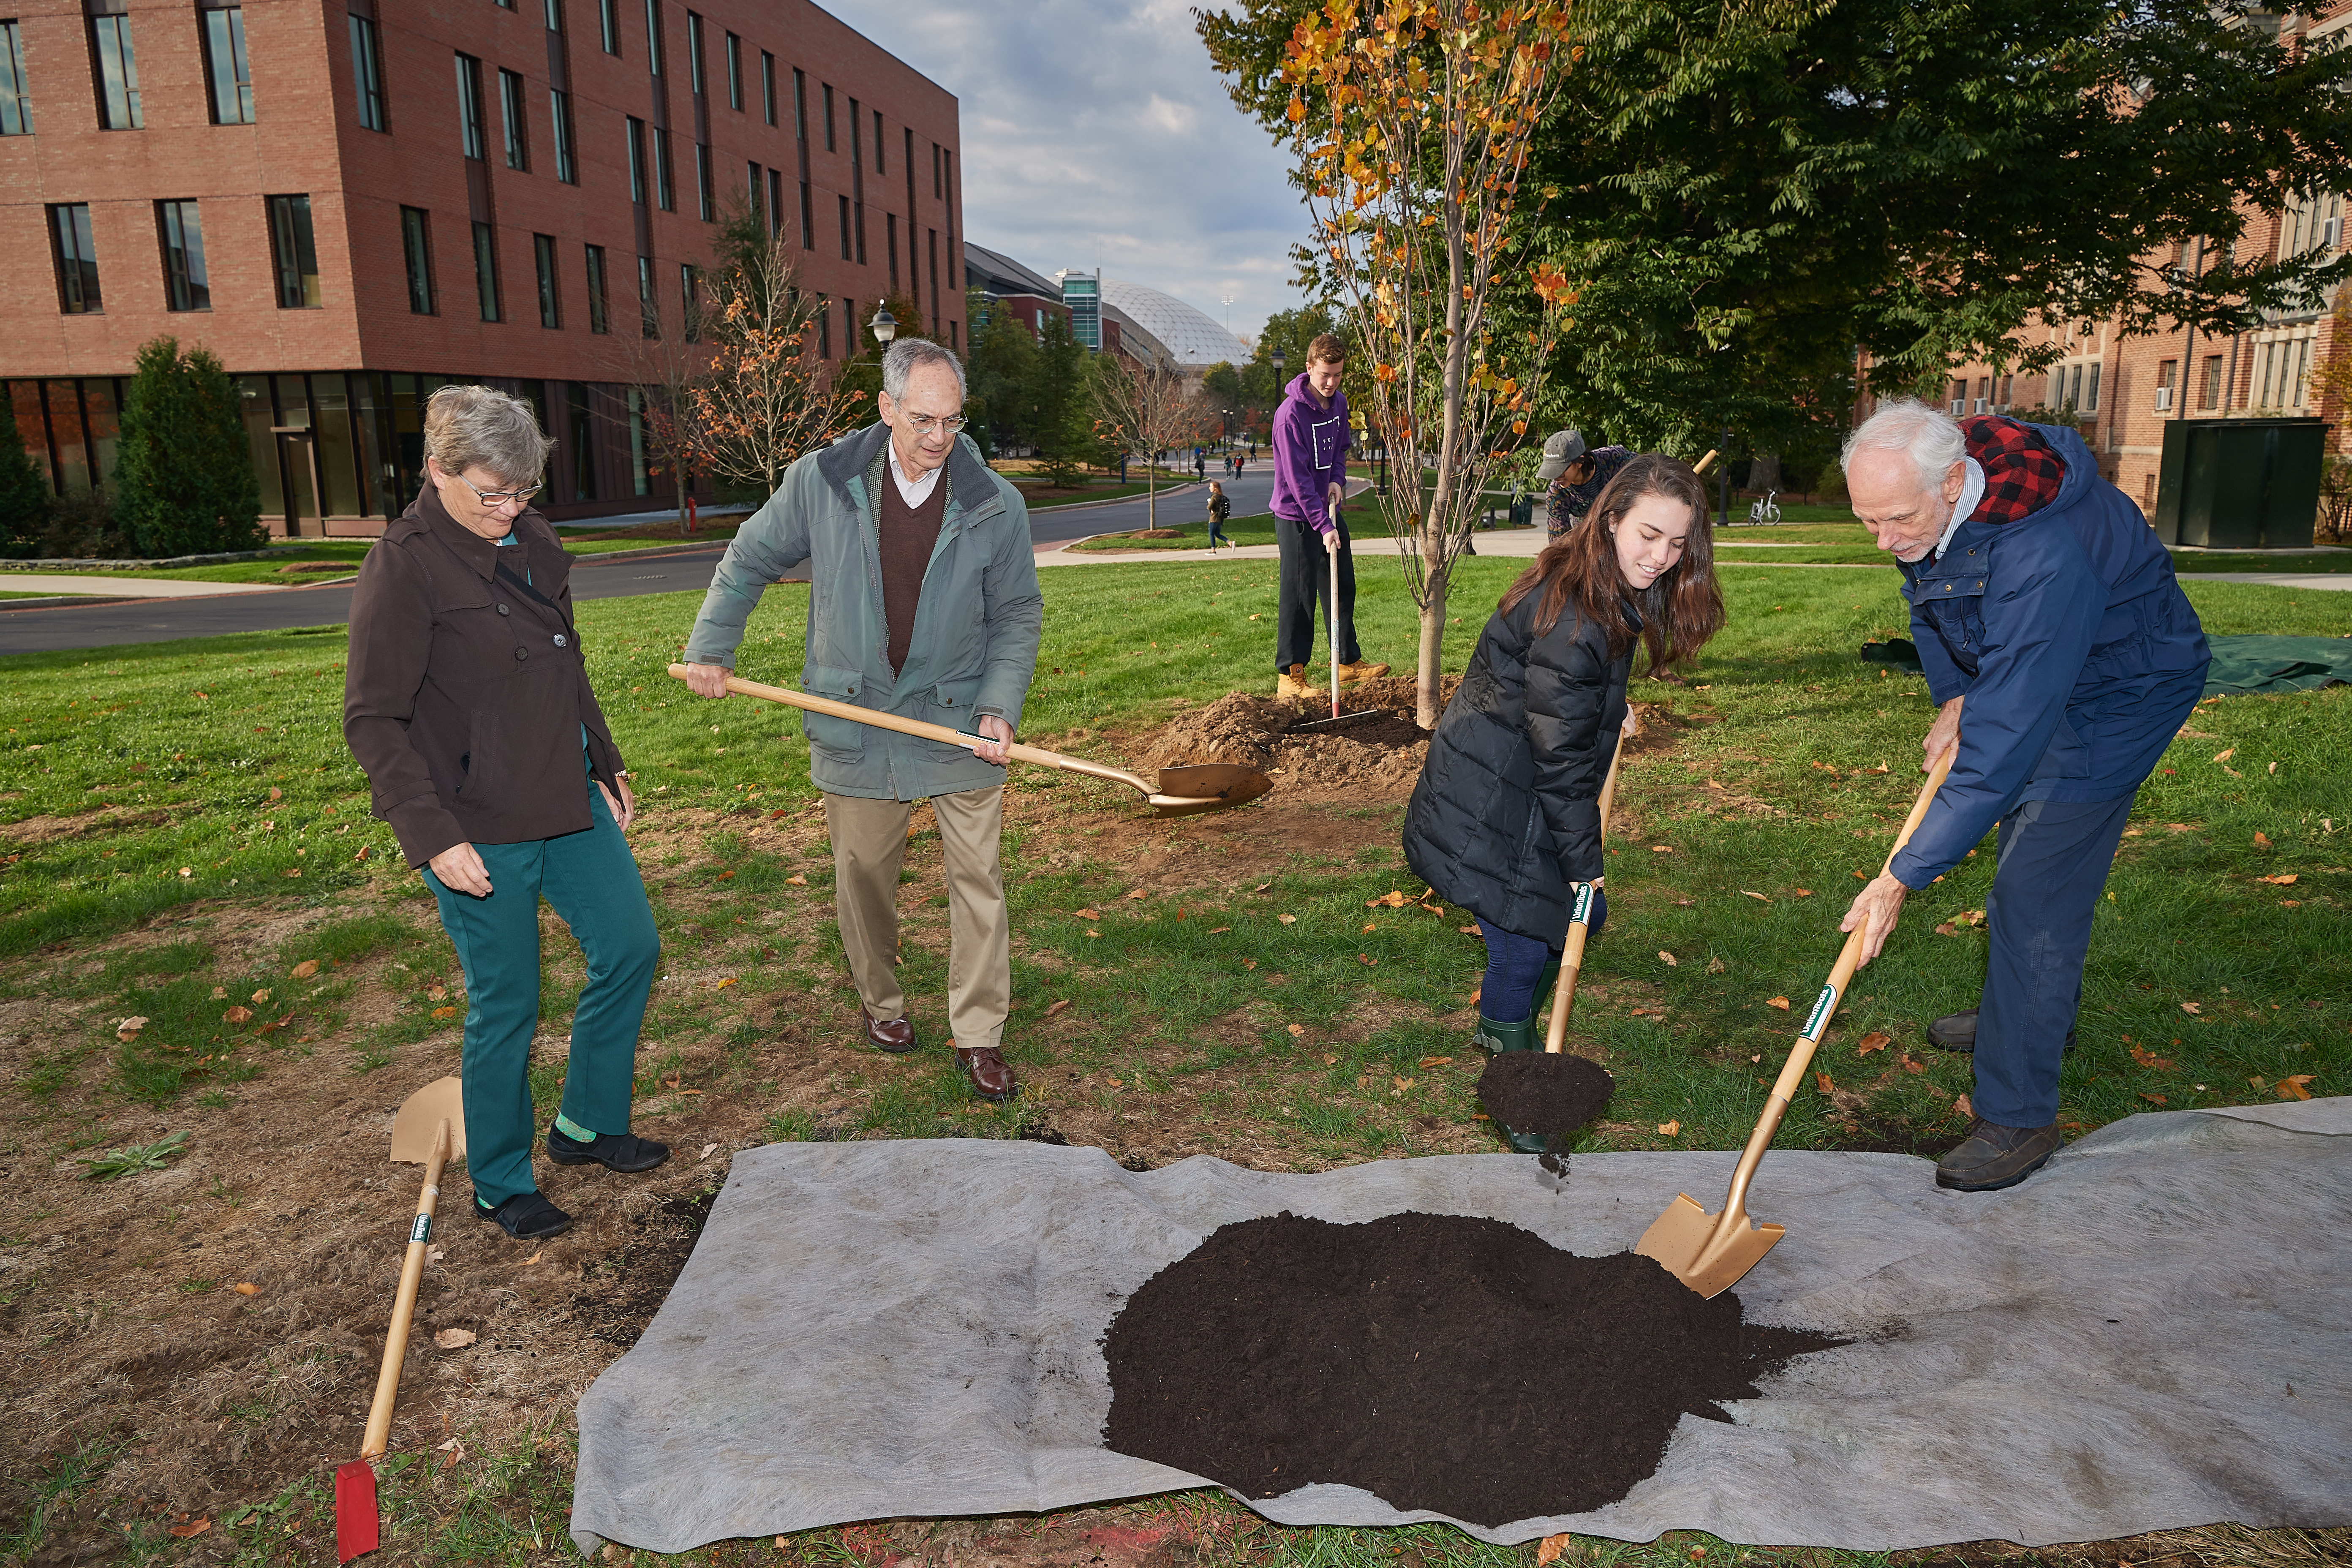 Eileen McHugh, university tree warden, left, Richard Brown, Distinguished Professor Emeritus of History, Natalie Roach '21 (CLAS), and Greg Anderson, Distinguished Professor Emeritus of Ecology and Evolutionary Biology, participate in the ceremonial planting of the Class of 2019 tree near the William H. Hall Building on Oct. 23, 2018. (Peter Morenus/UConn Photo)